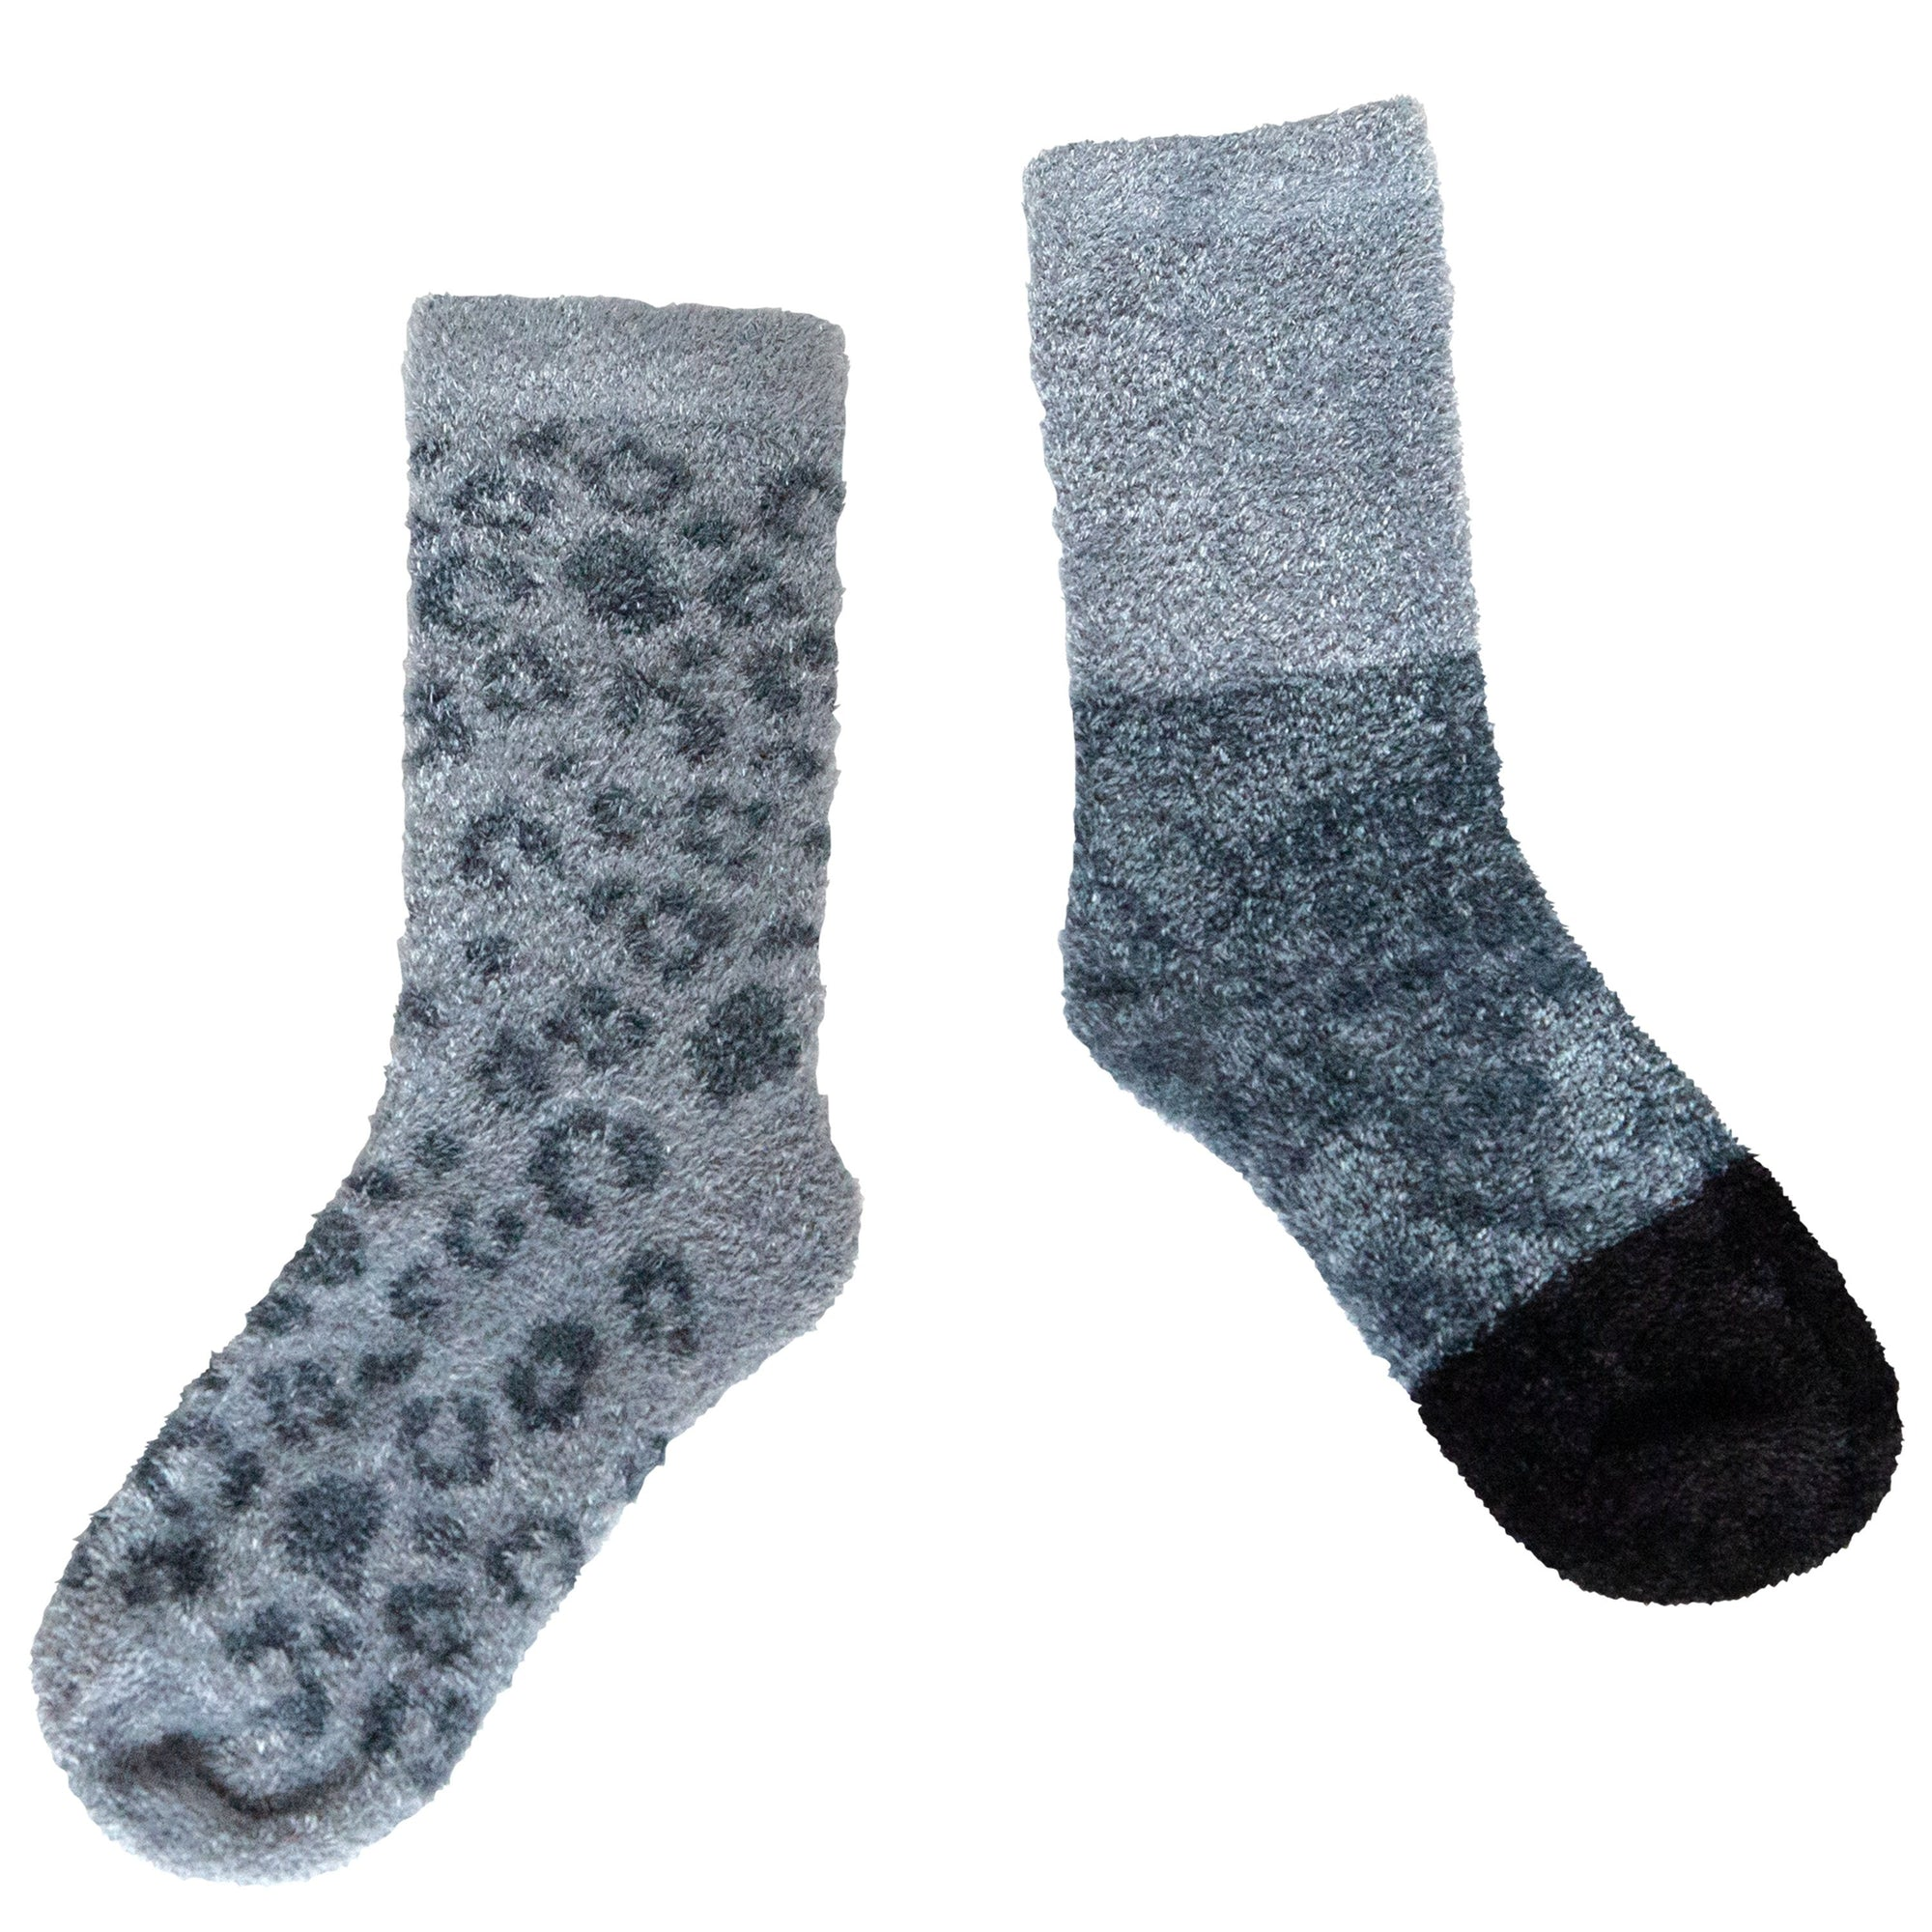 Women's Luxe Crew Socks